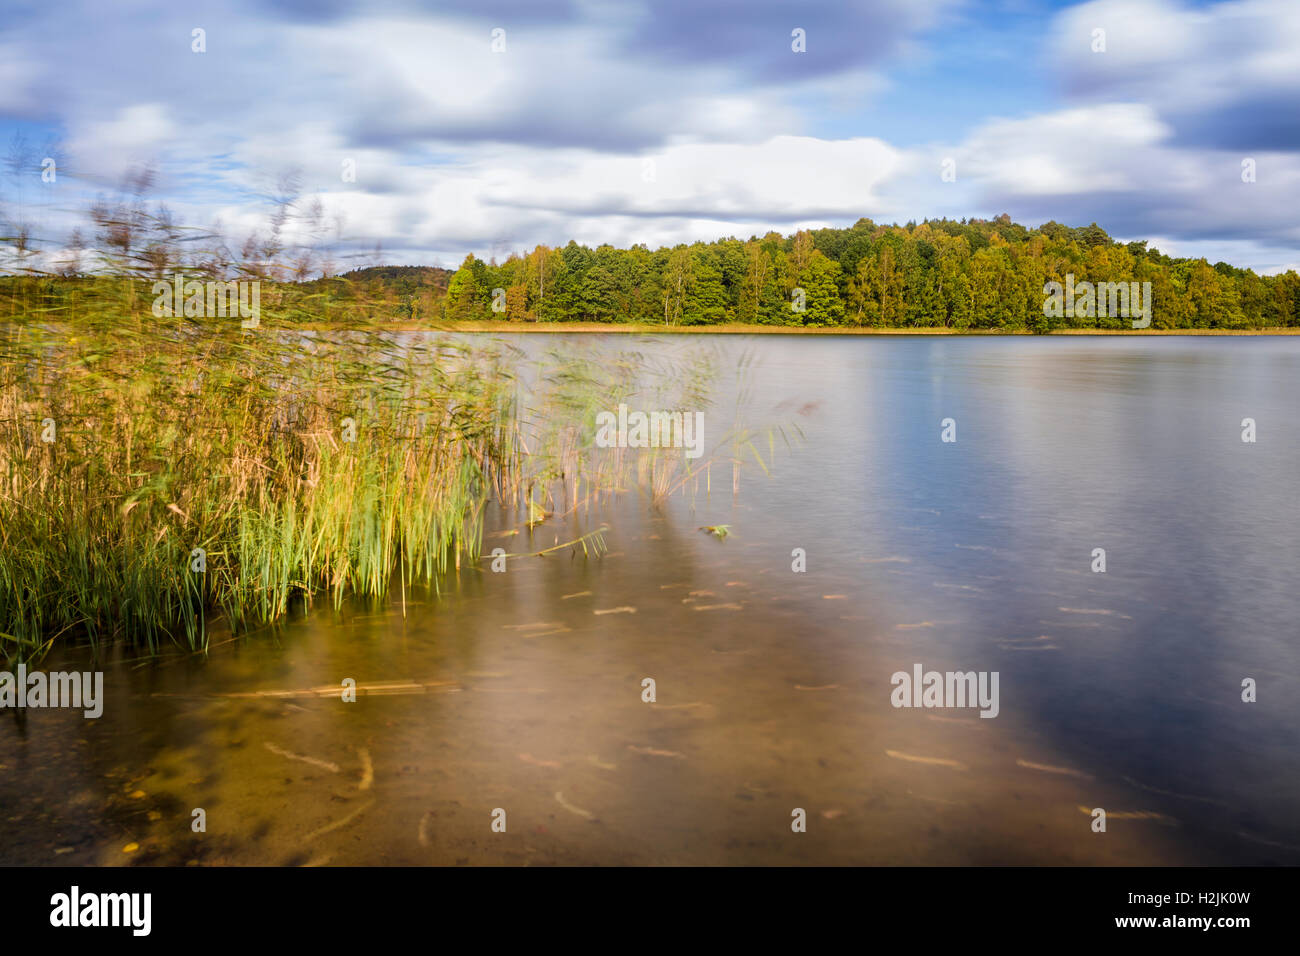 Reeds and lake beautiful typical swedish summer long exposure landscape waterscape  Model Release: No.  Property - Stock Image